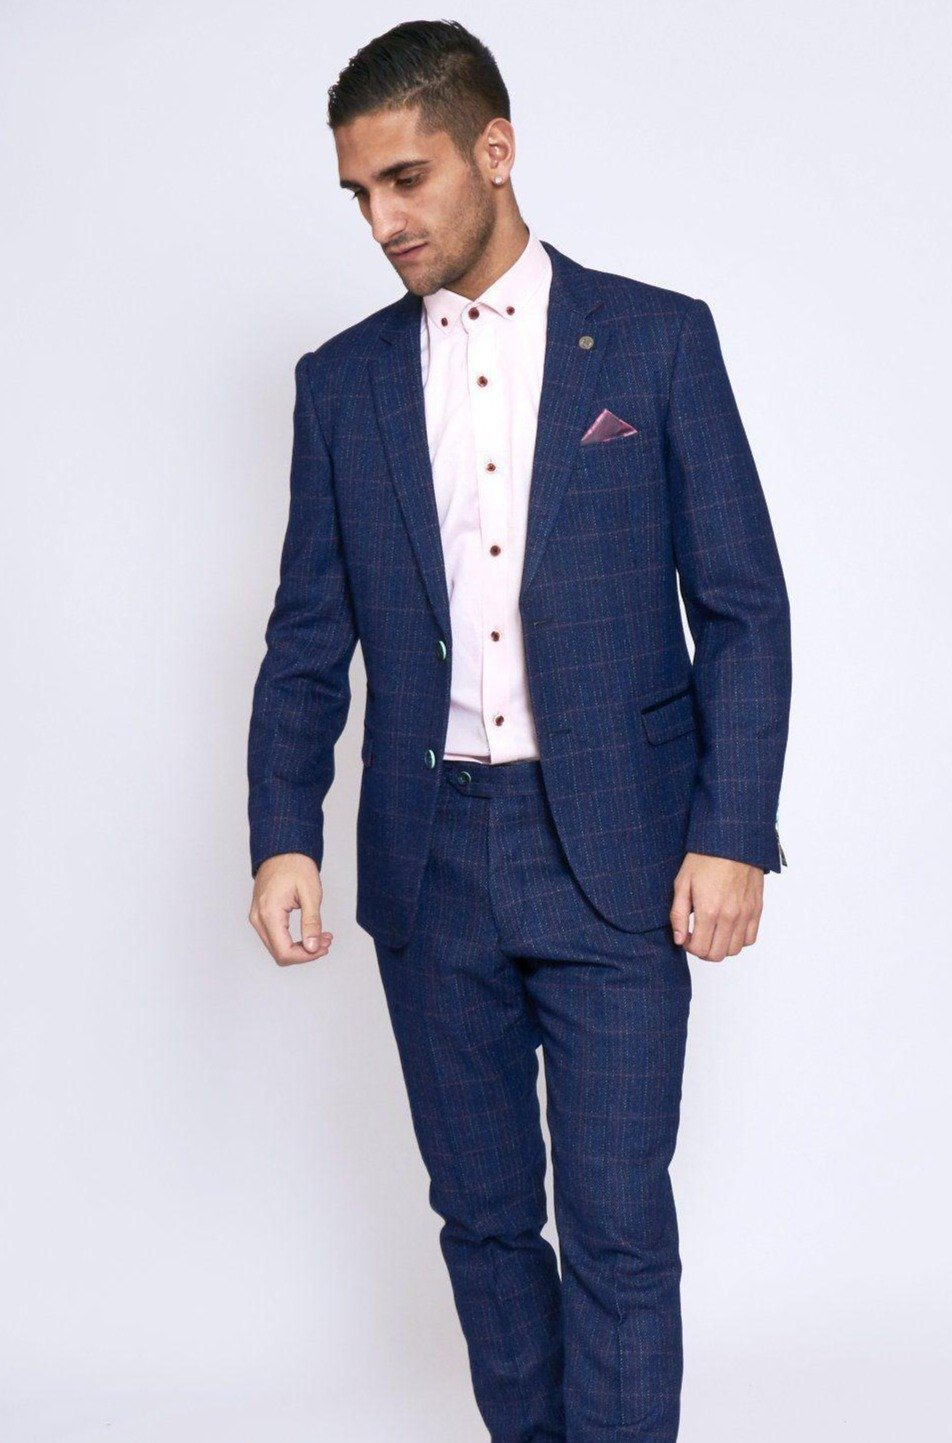 Harry Indigo Tweed Check Two Piece Suit By Award Winning Menswear Marc Darcy